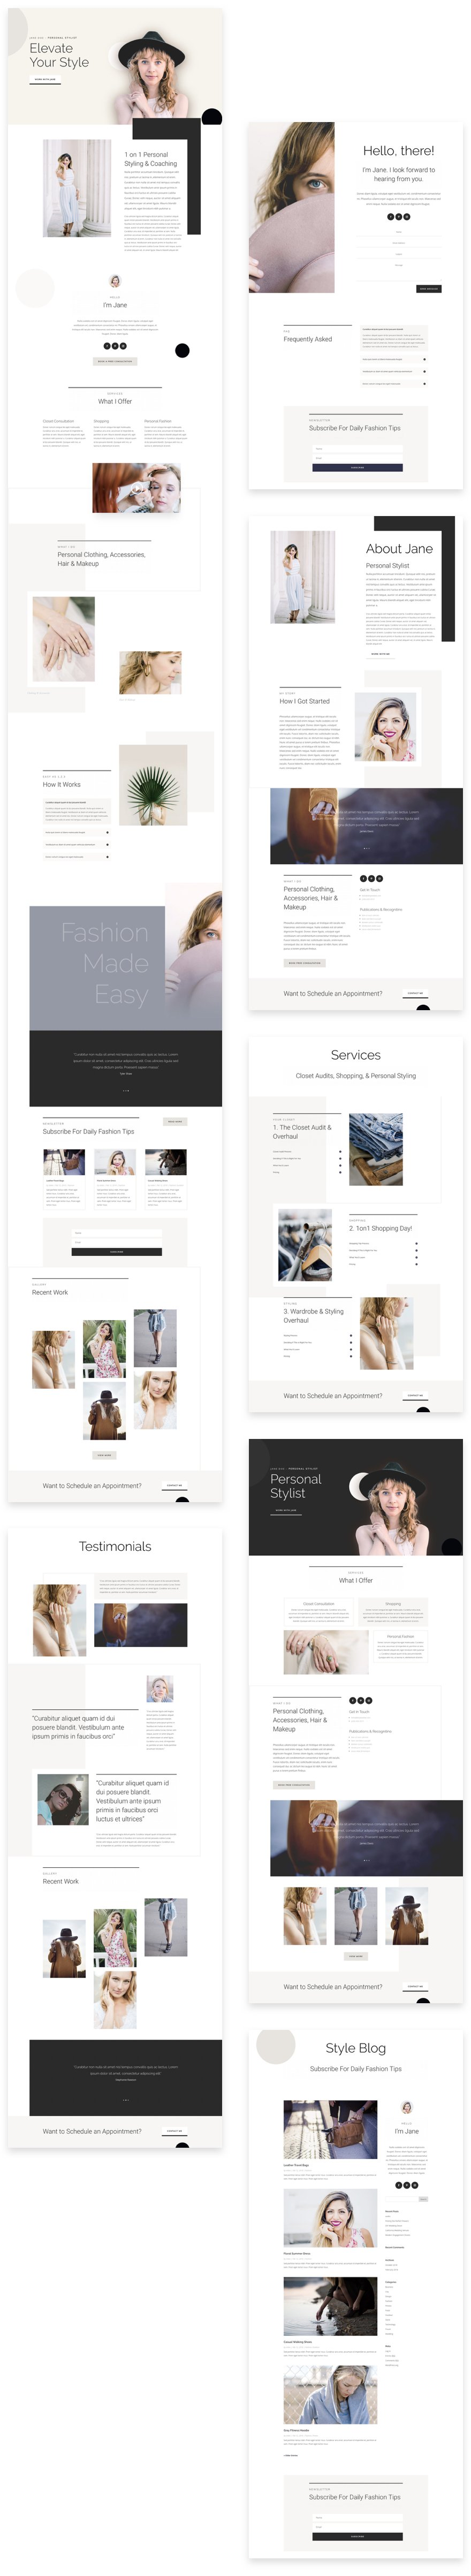 personal stylist layout pack